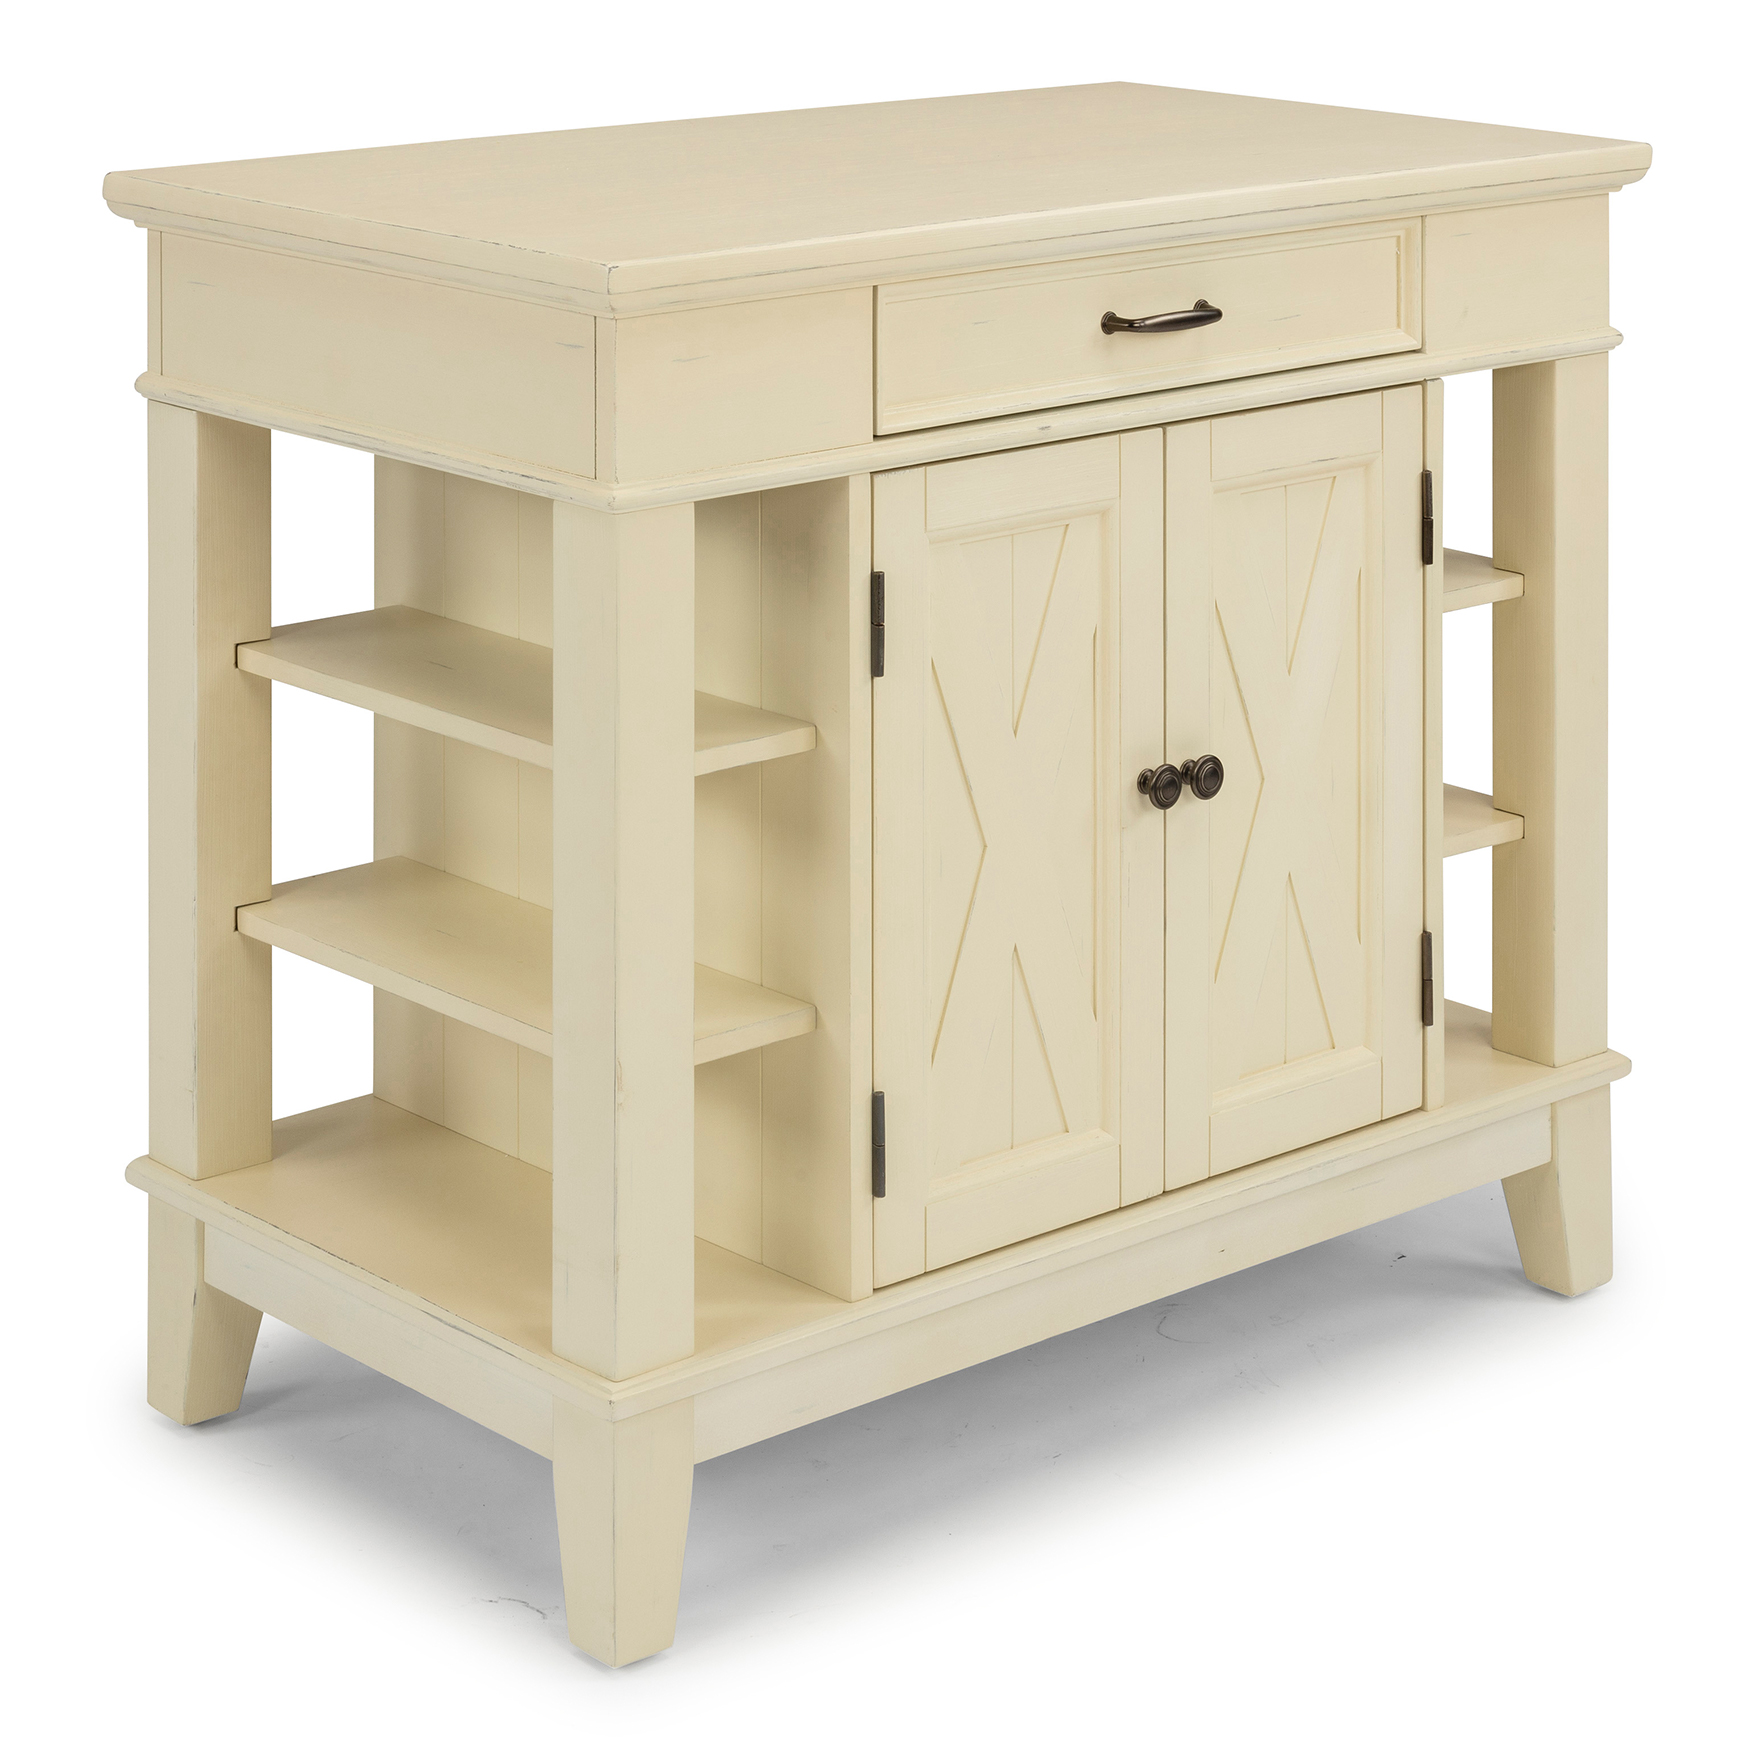 Seaside Lodge Kitchen Island by Home Styles, WHITE